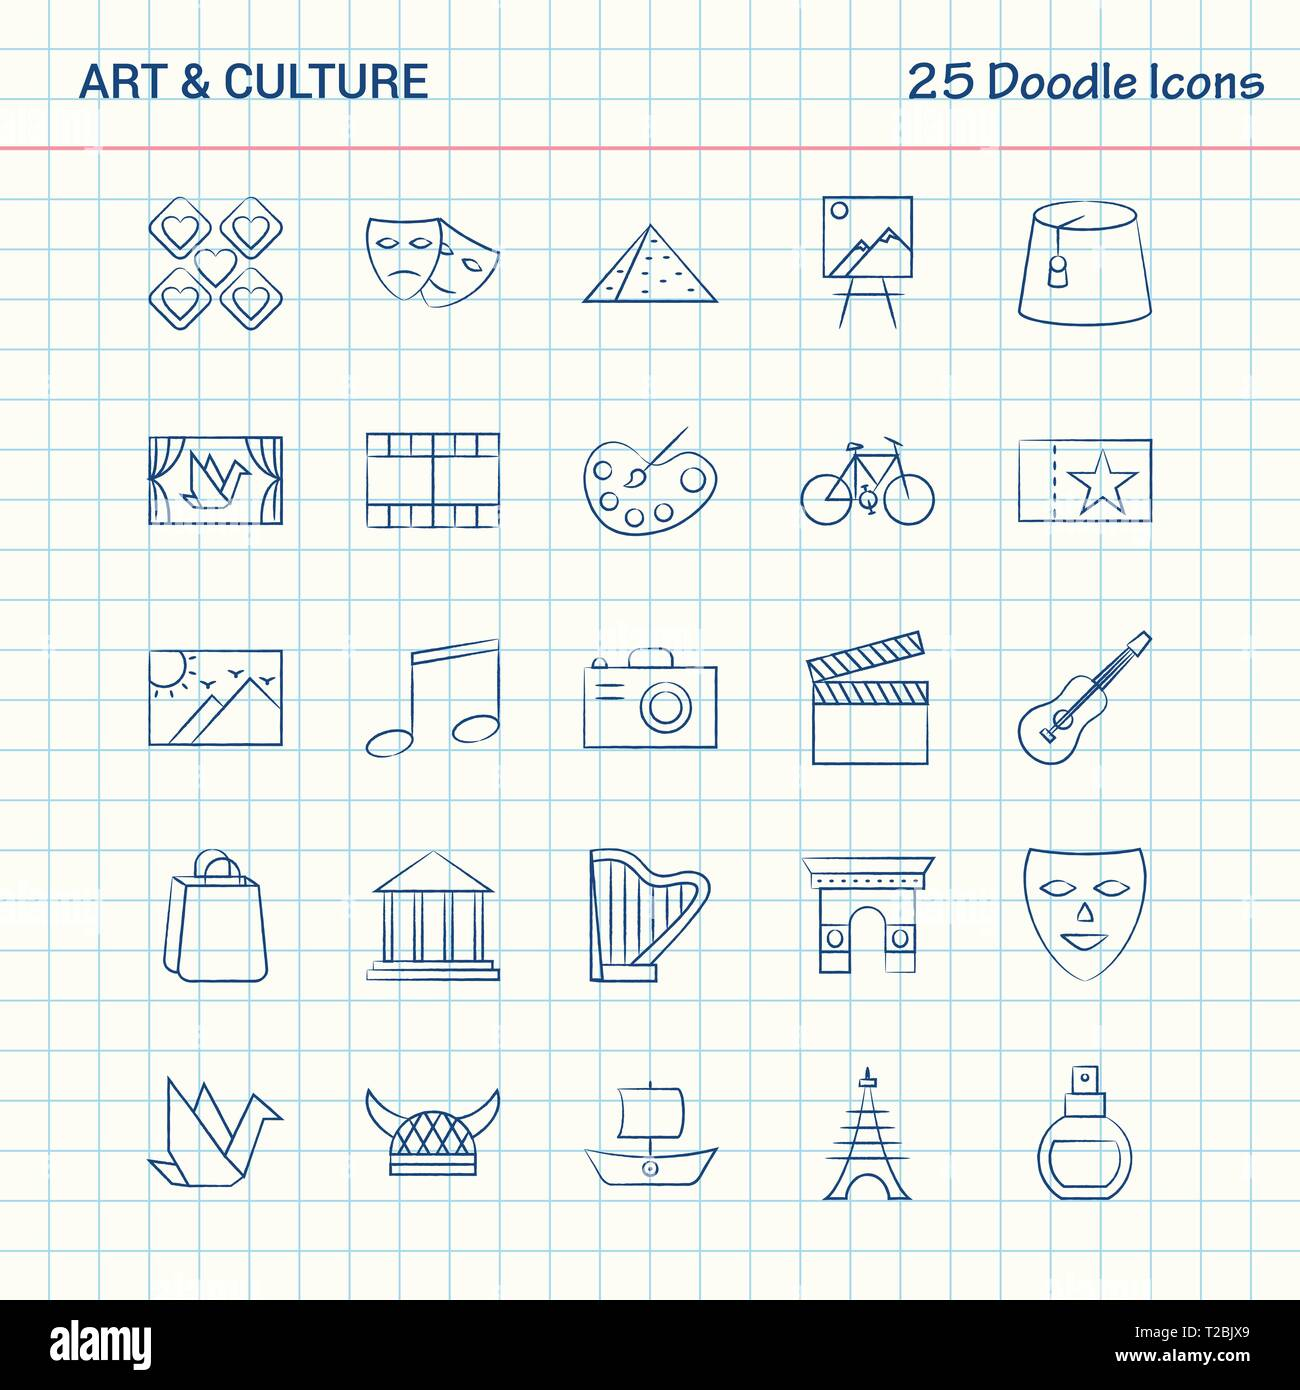 Art and Culture 25 Doodle Icons. Hand Drawn Business Icon set - Stock Vector